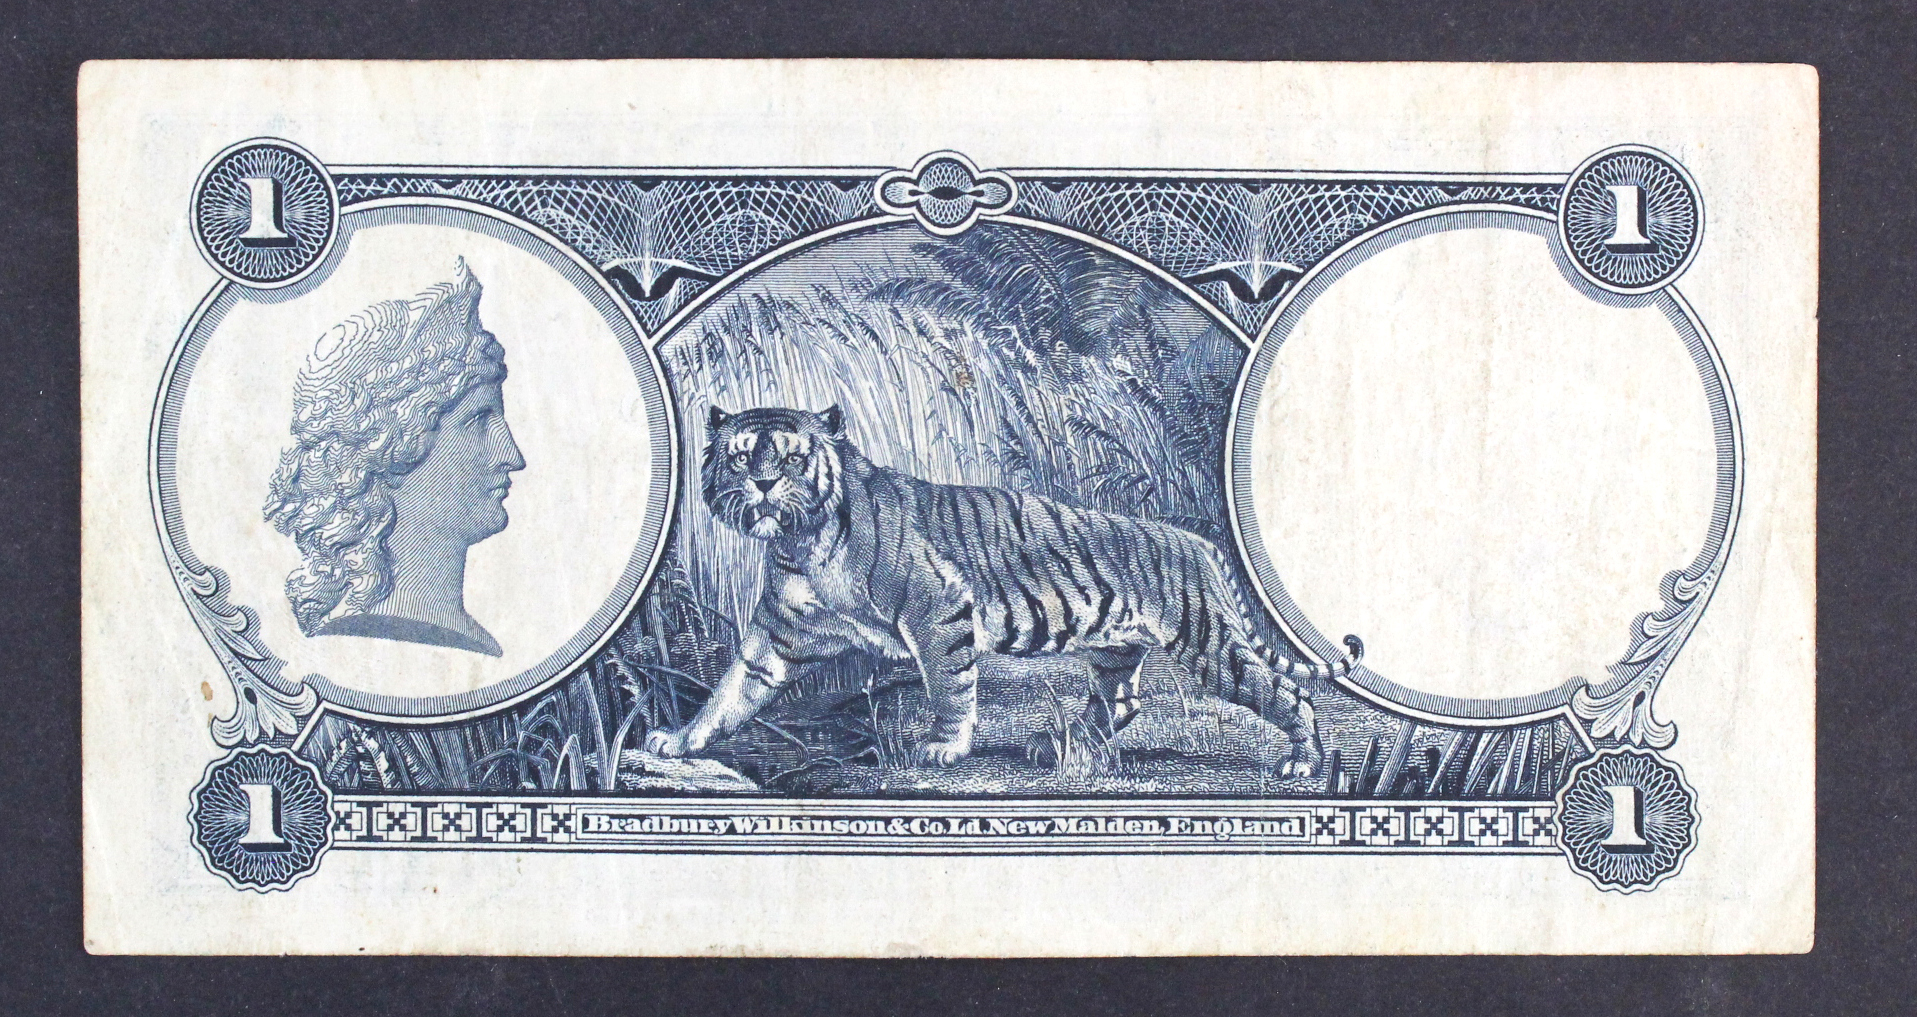 Straits Settlements 1 Dollar dated 1st January 1935, portrait King George V at right, serial L/55 - Image 2 of 2